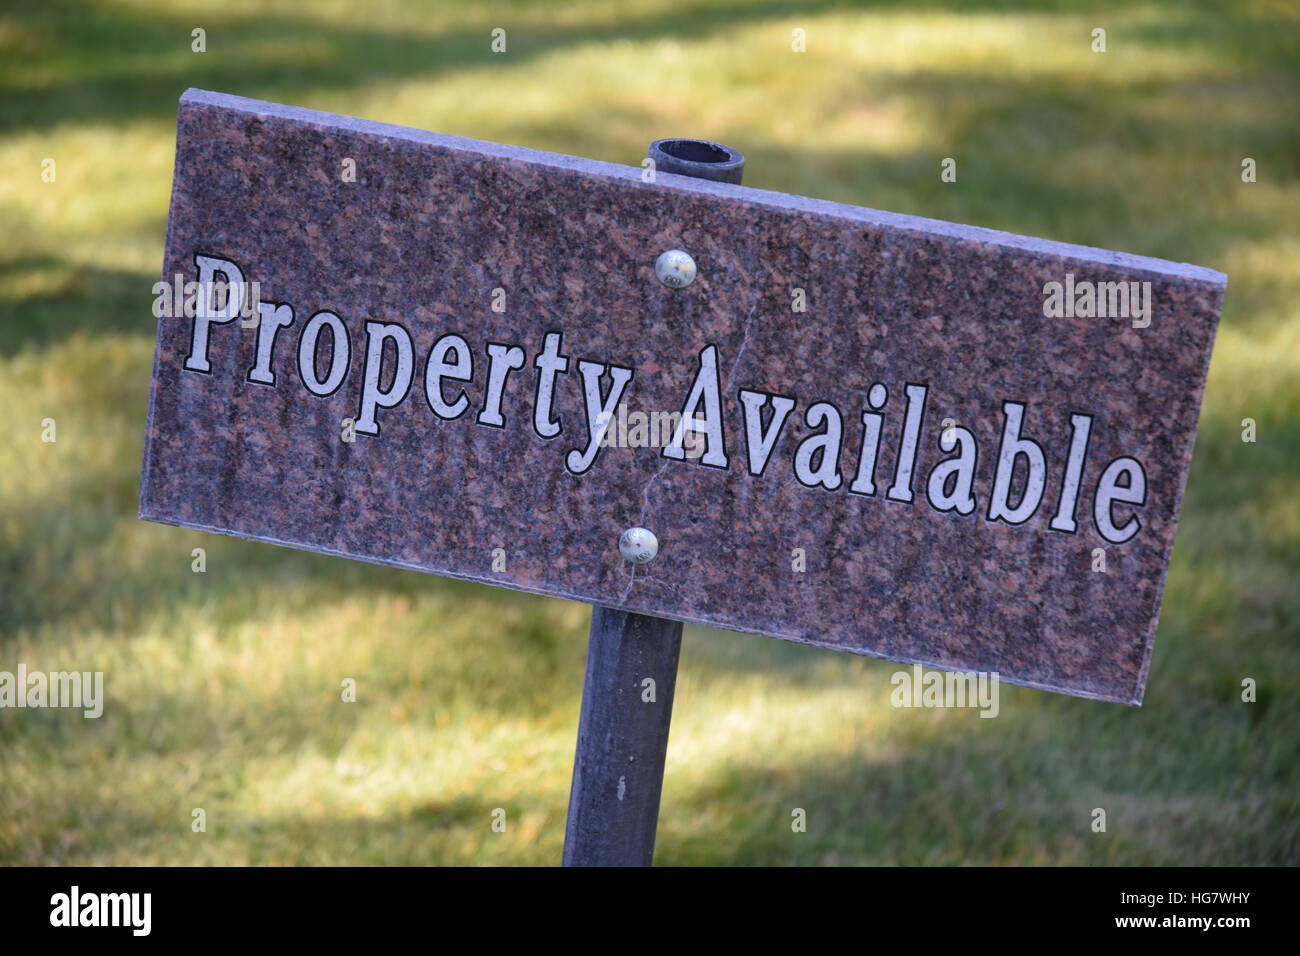 Property Available sign in cemetery. - Stock Image